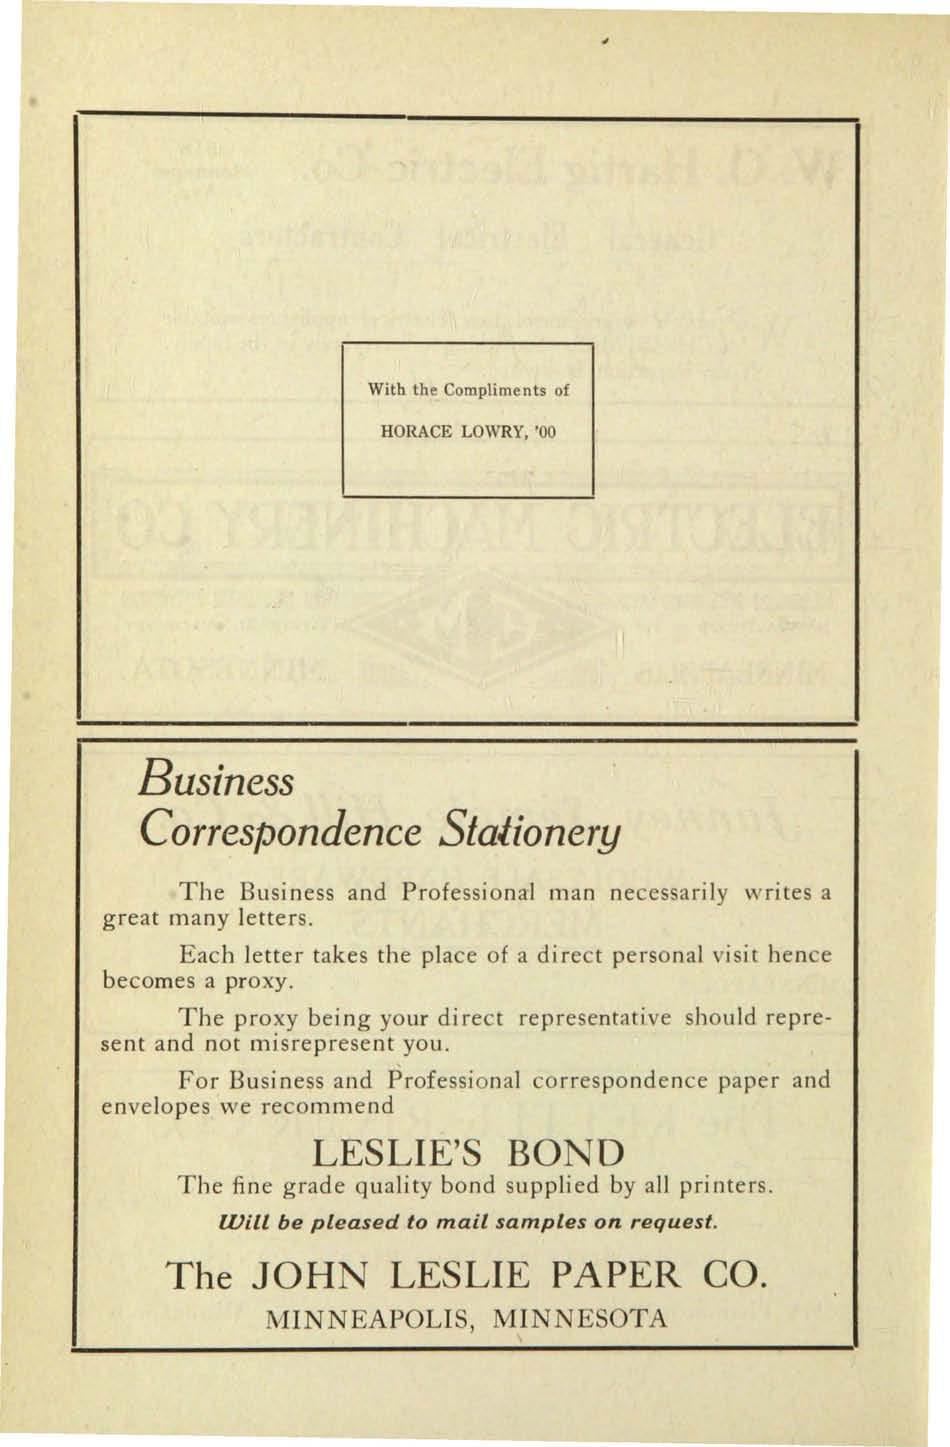 With the Compliments of HORACE LOWRY, '00 Business Correspondence SlaJionery The Business and Professional man necessarily writes a great many letters.